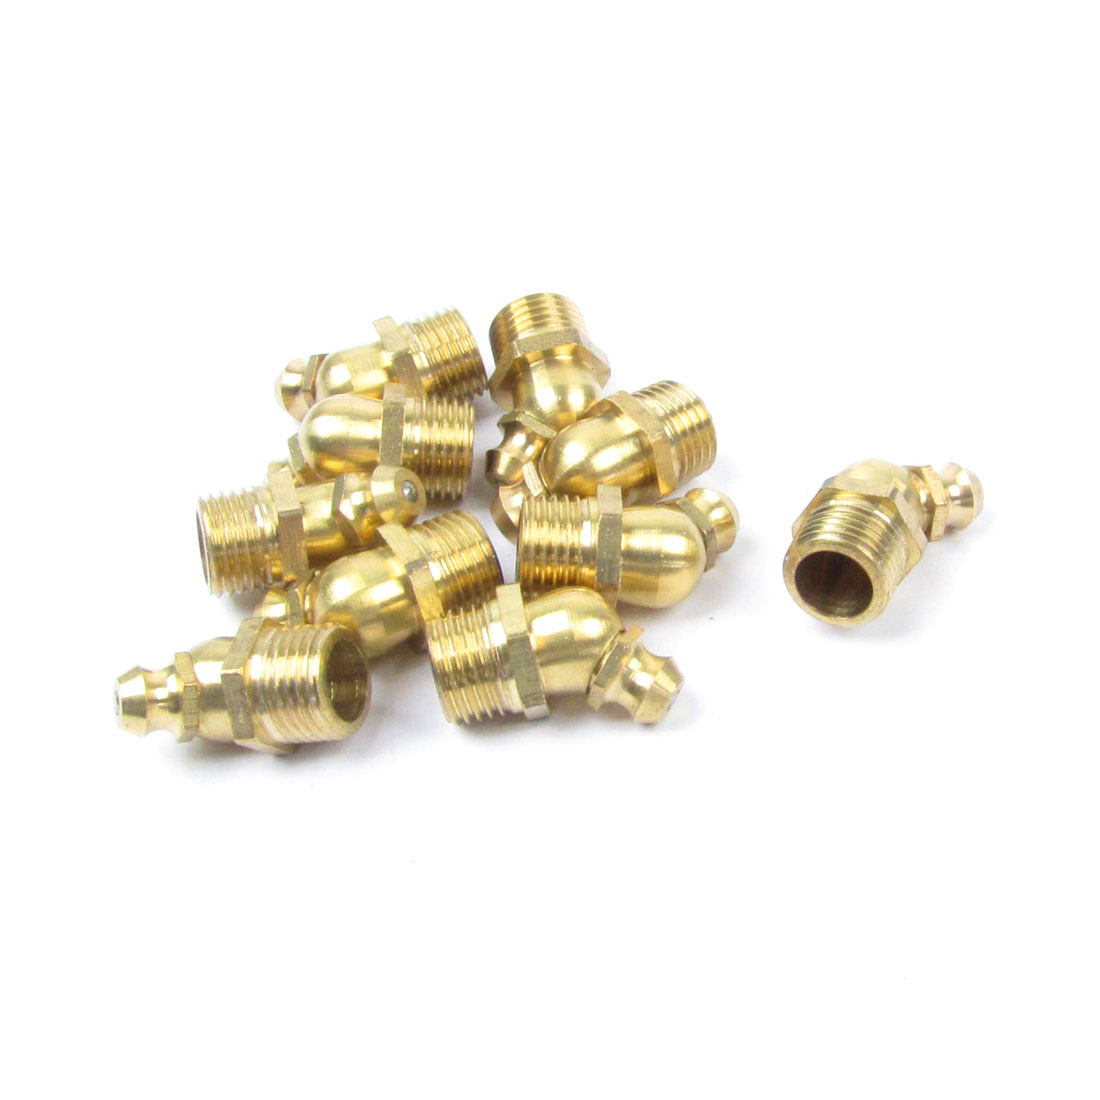 10 Pcs Male Thread 45 Degree Angle M10 Thread Brass Zerk Fitting Grease Nipple